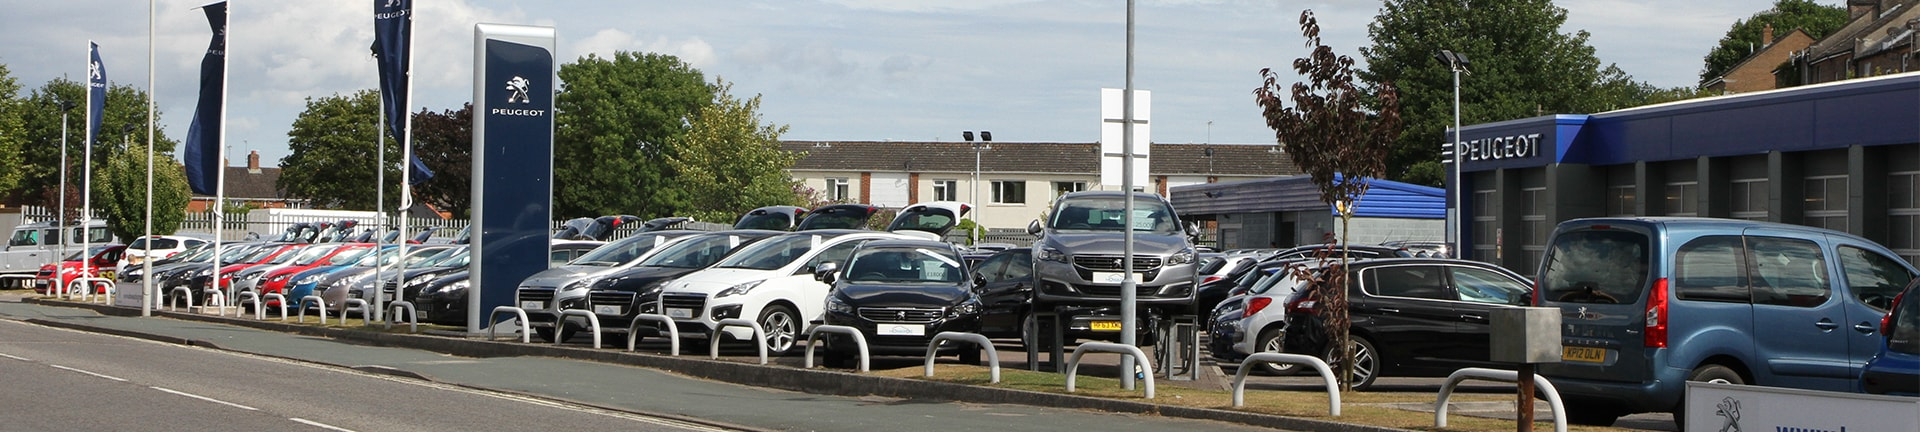 Howards Auto Sales >> Howards | New & Used Cars & Vans Dorchester | Peugeot